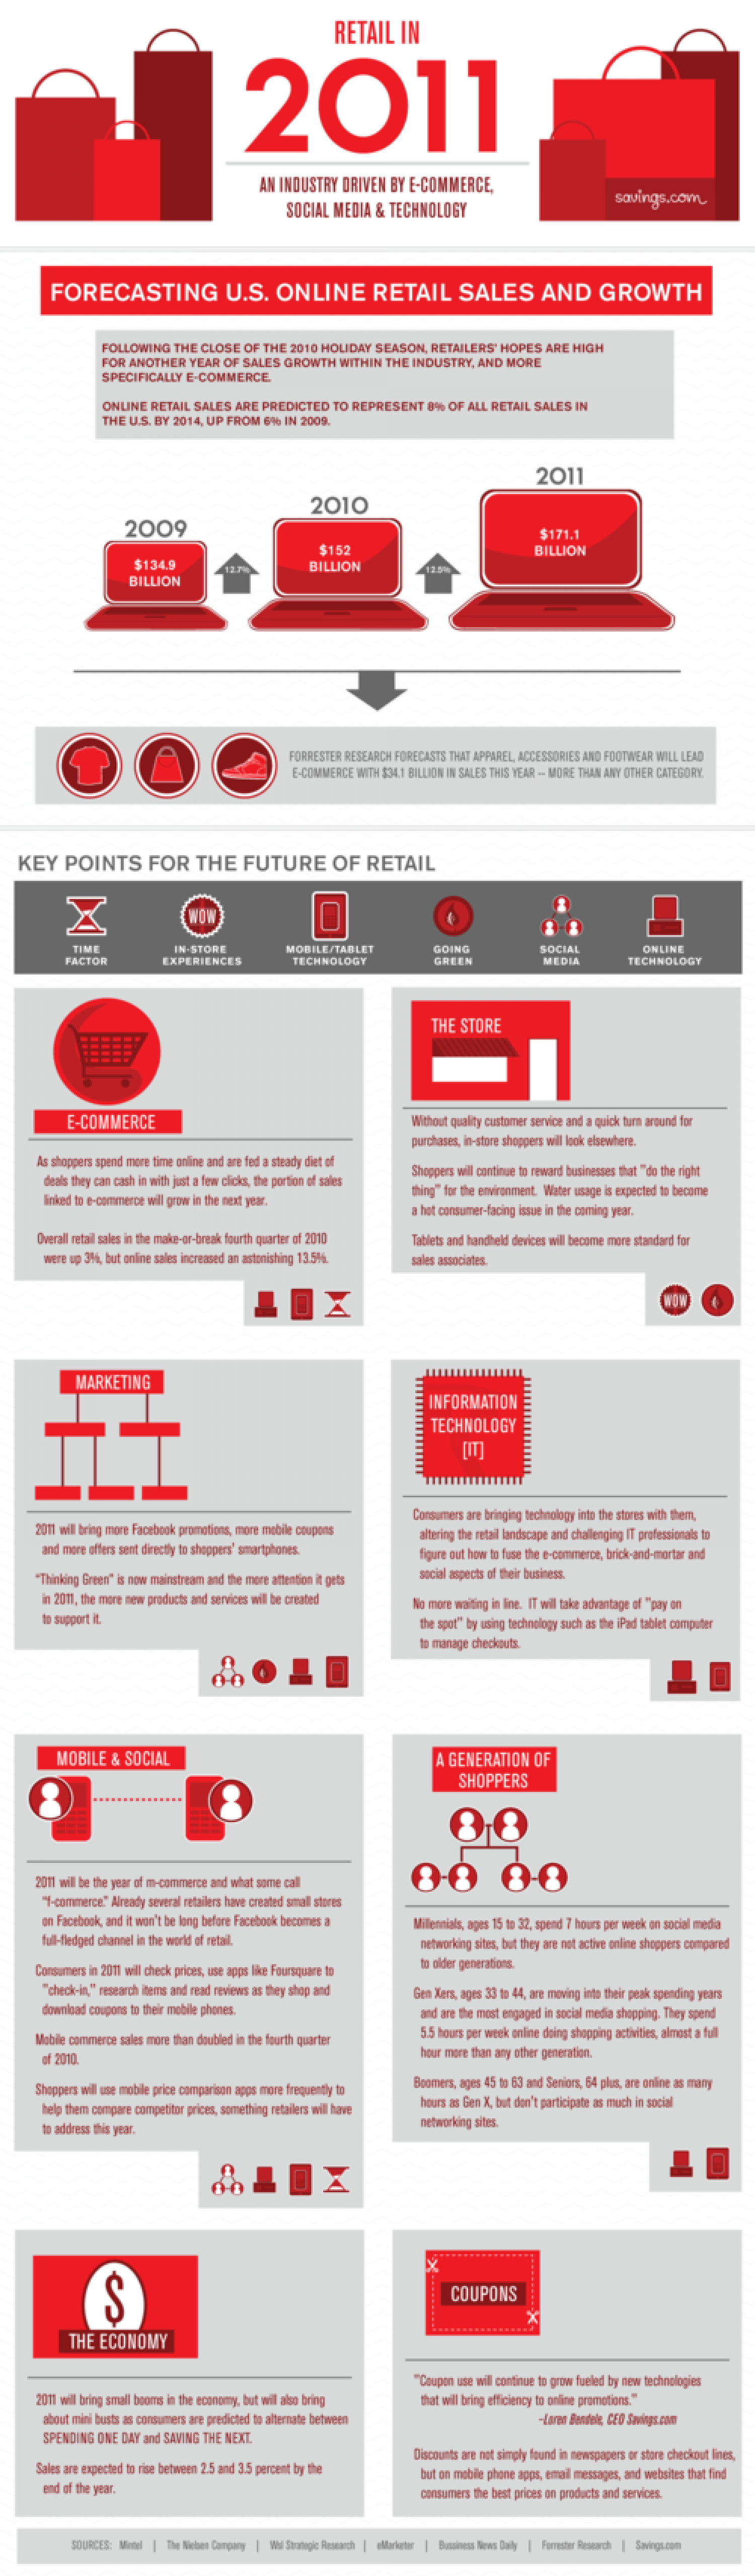 Retail in 2011 Infographic